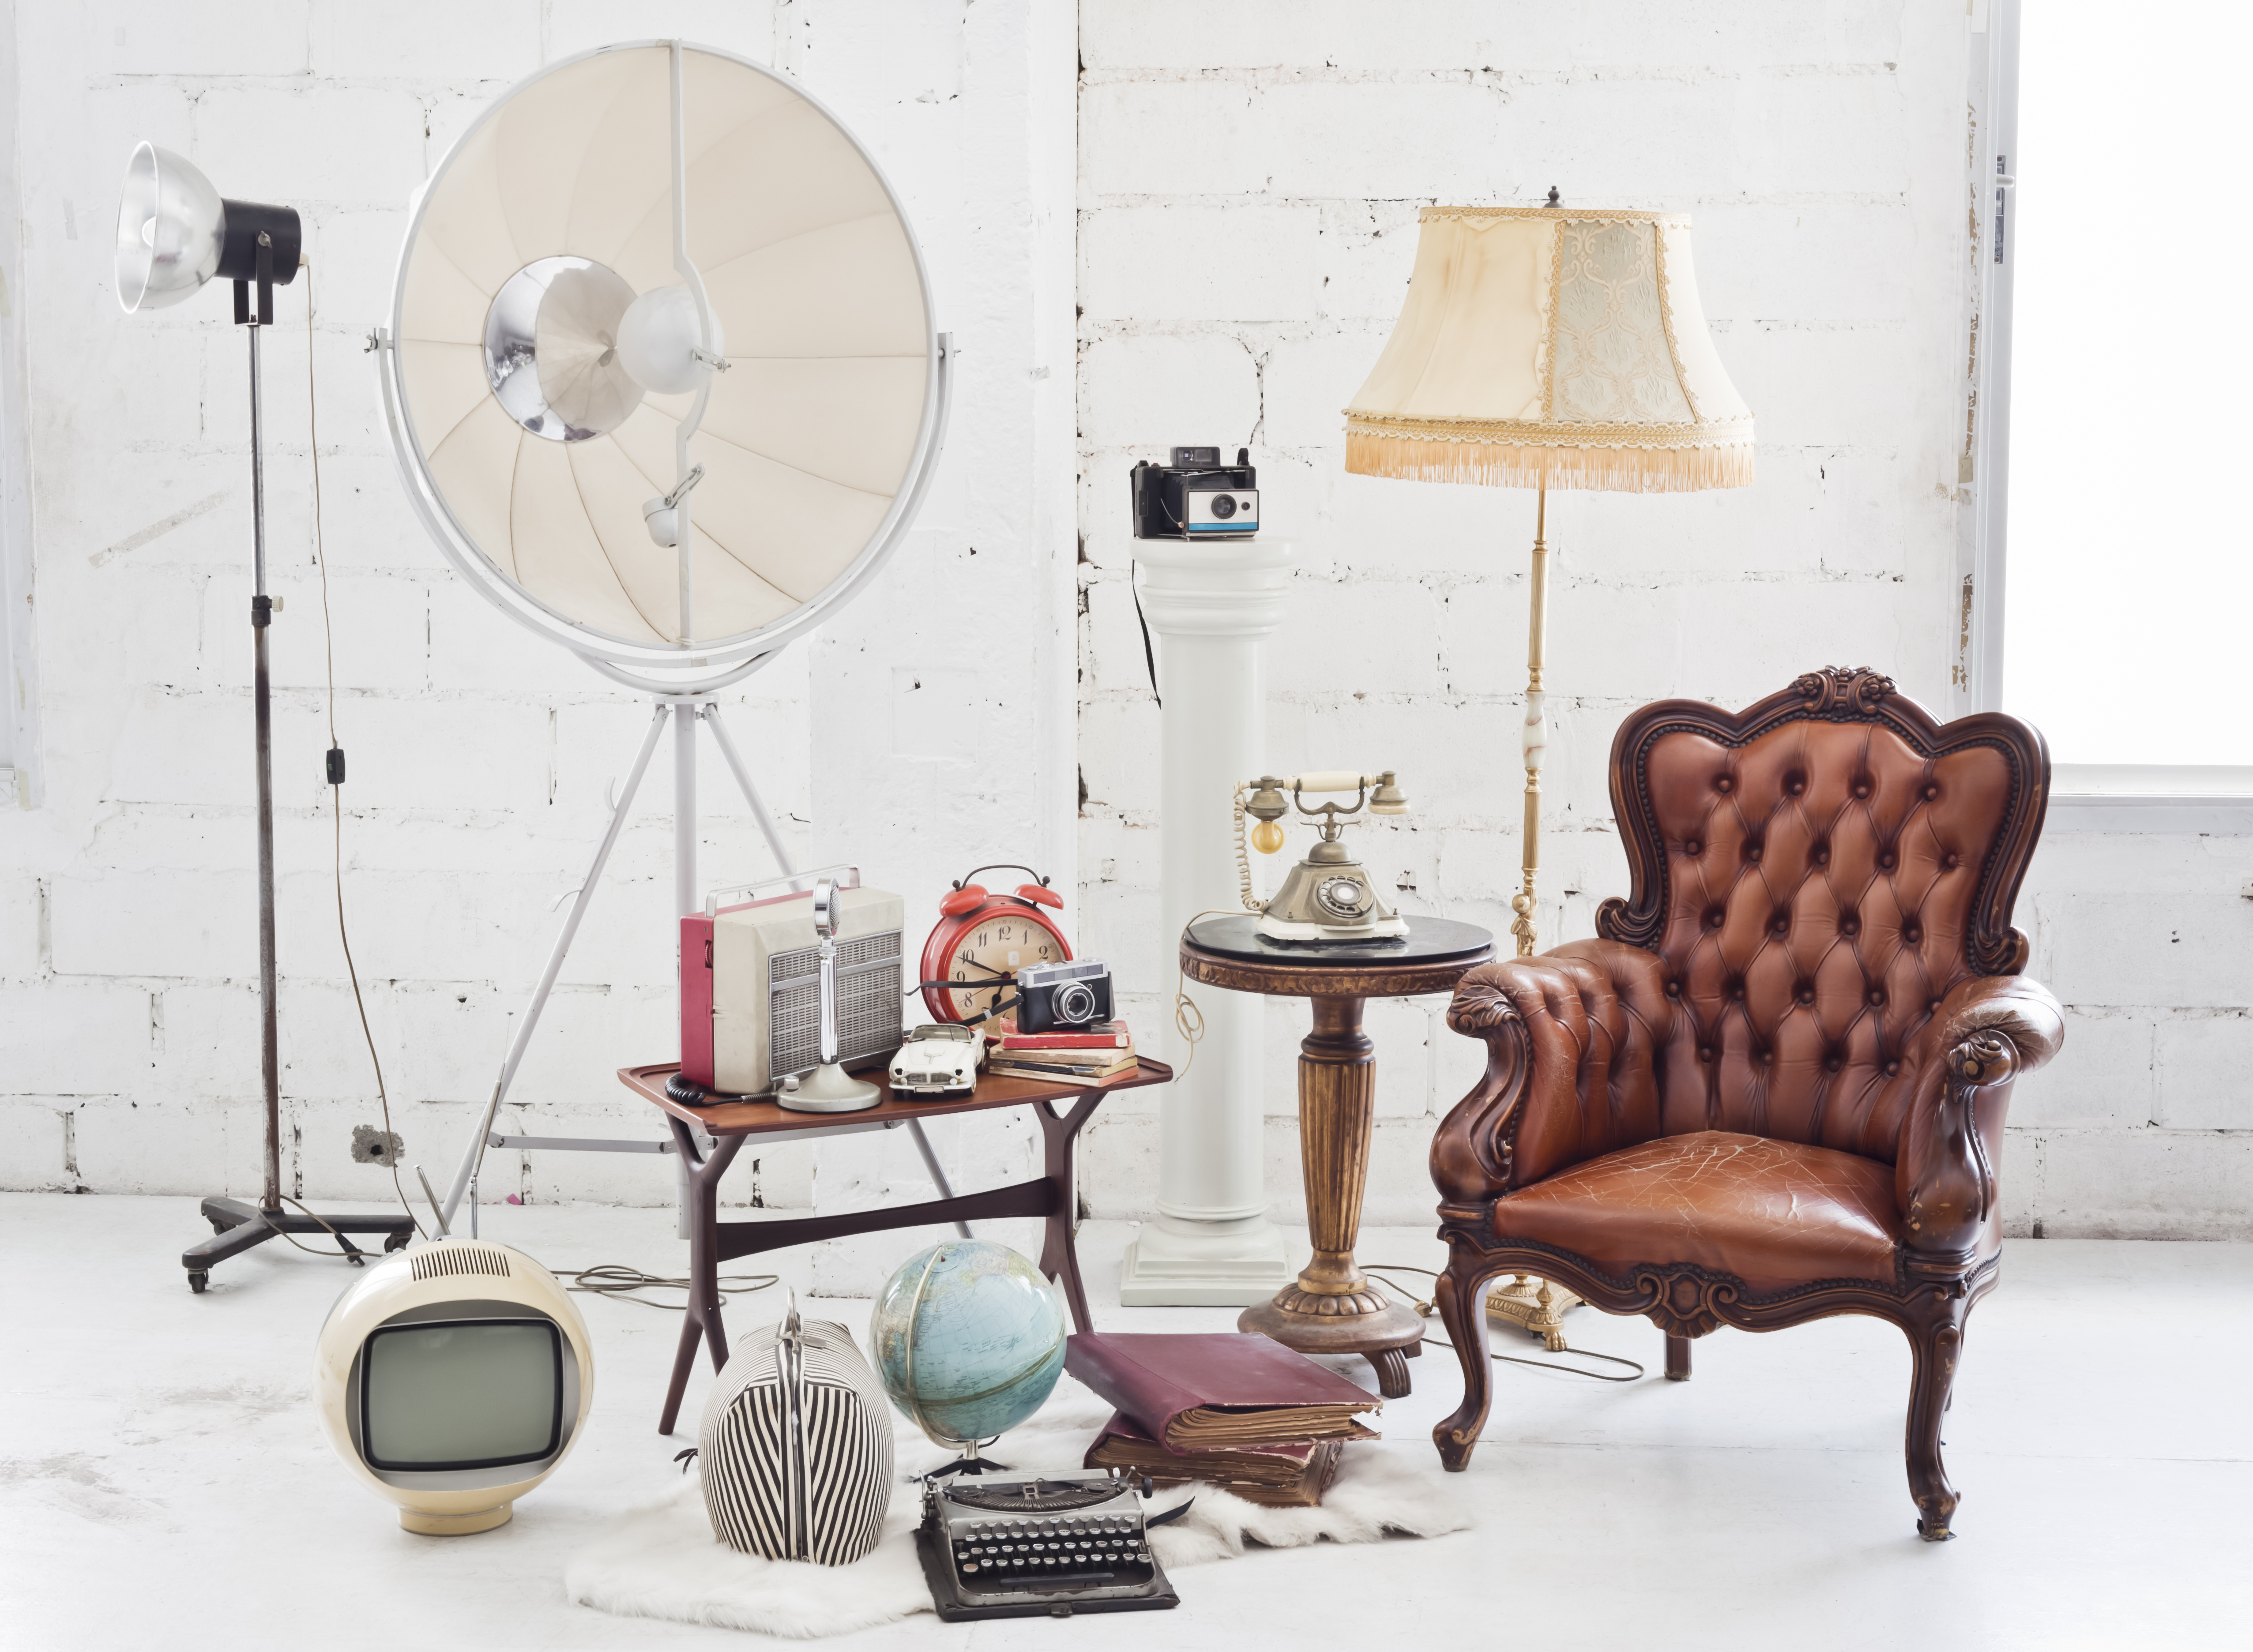 Time for a spring clean? How to sell your used stuff online